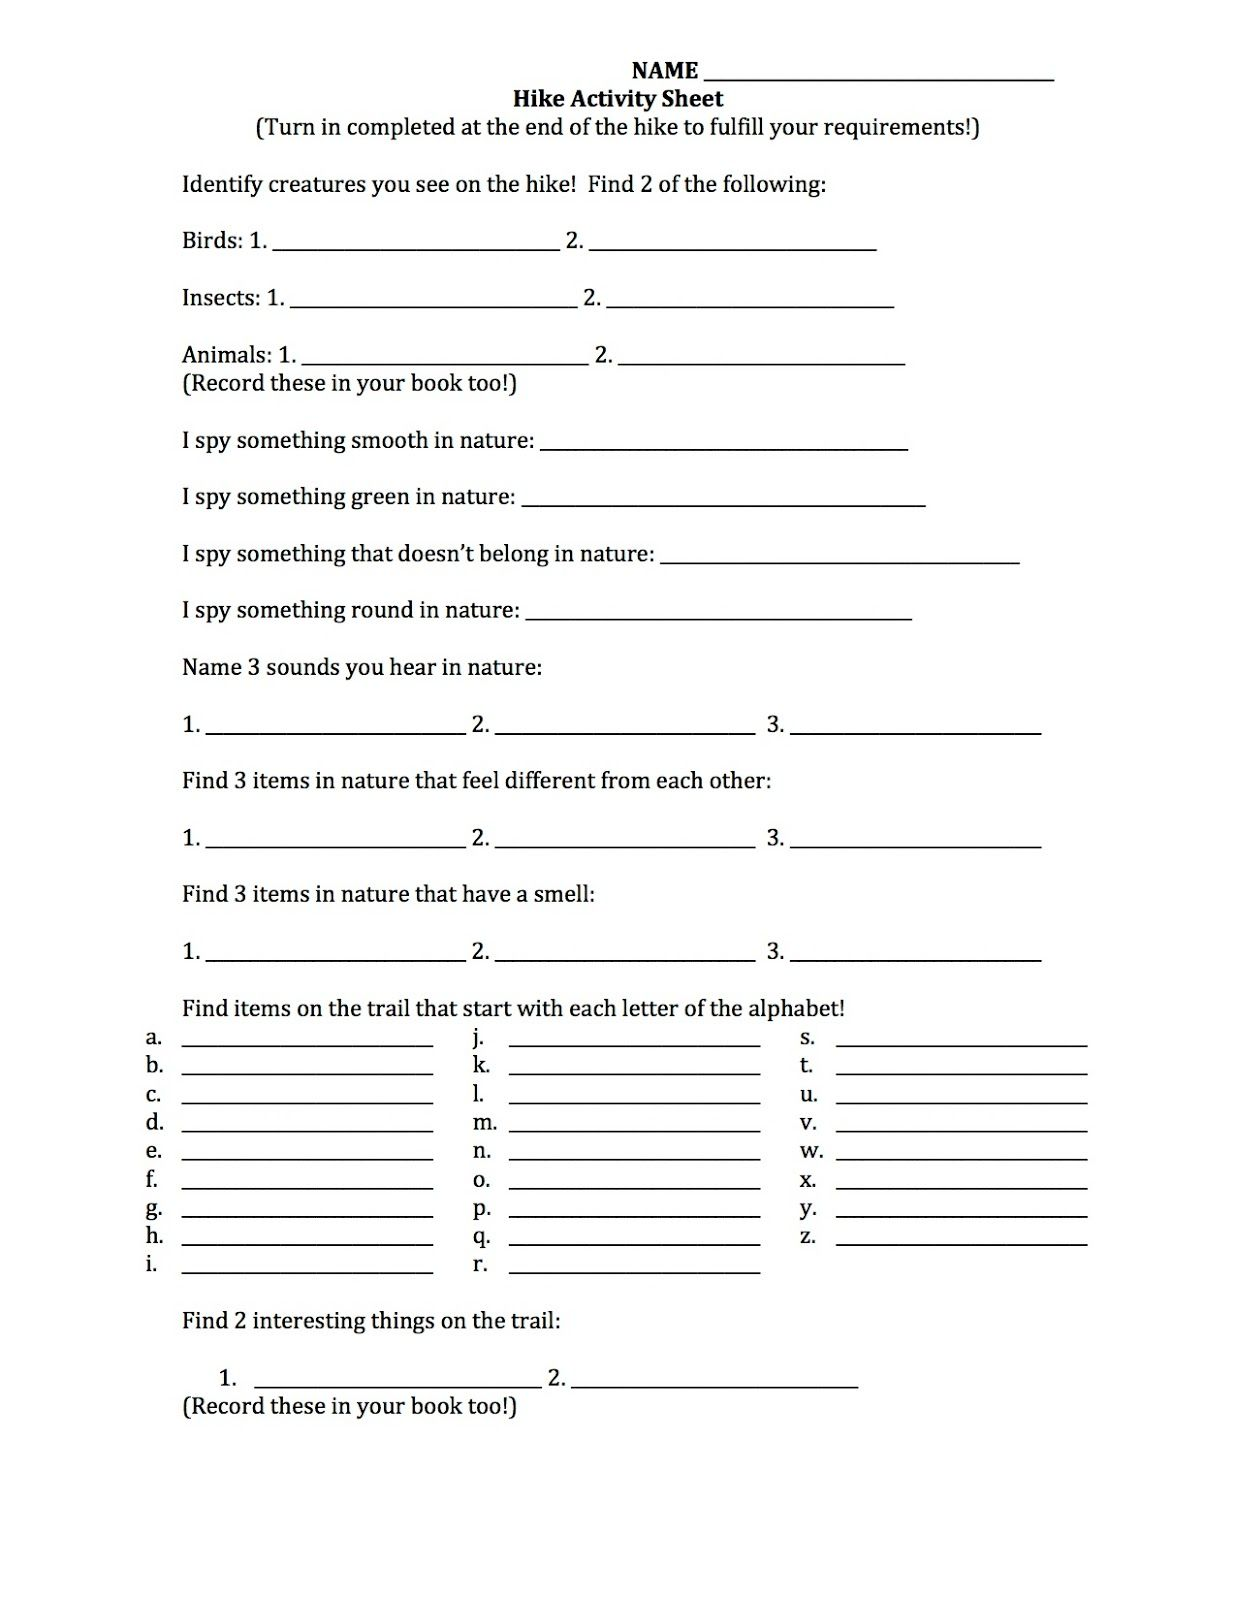 picture about Cub Scout Printable Activities named What 5 Educate Me: Cub Scout Hike Recreation Worksheet Camille